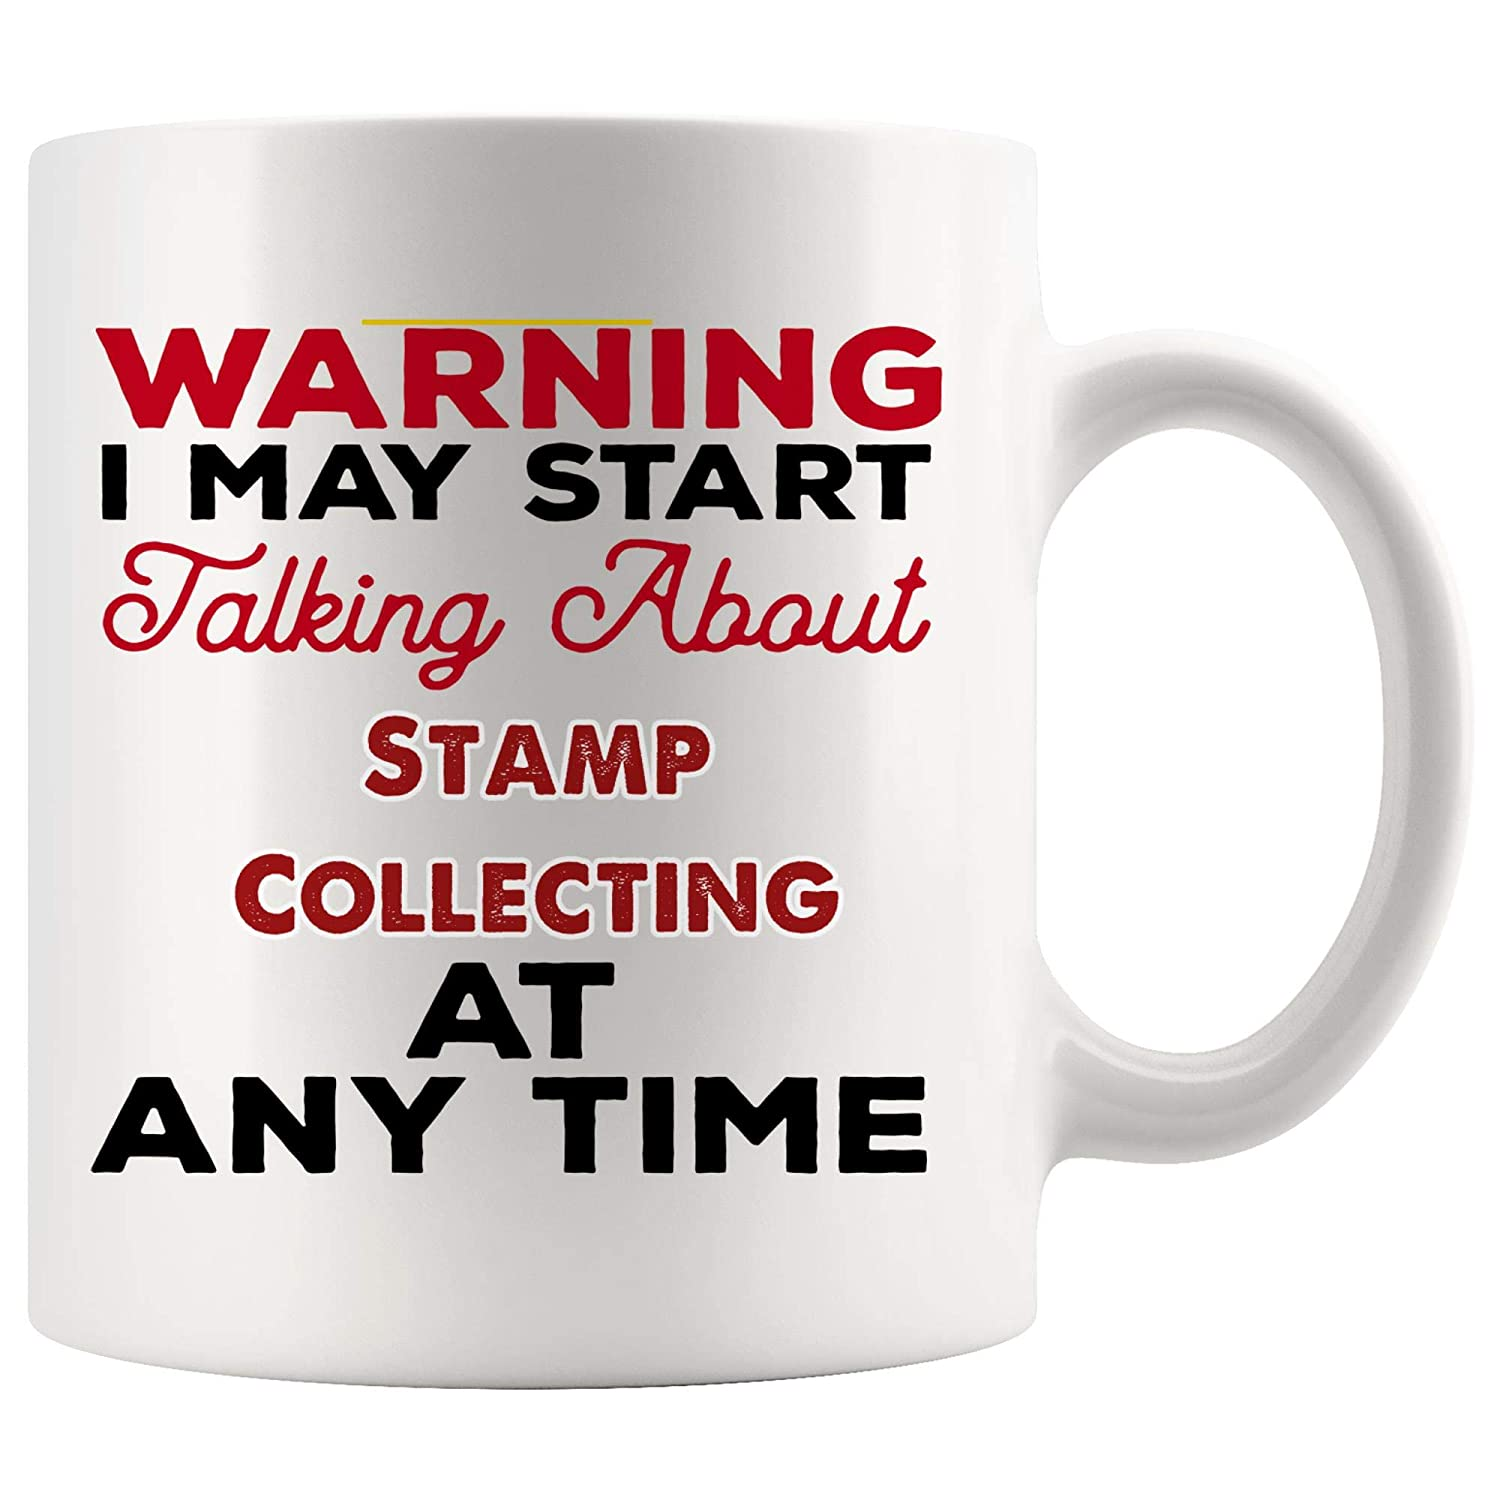 Talking About Stamp Collecting Mug Coffee Cup Tea Mugs Gift   Warning Talk At Any Time collector trading Stamp collectible Collection Funny Lover Men Women ...